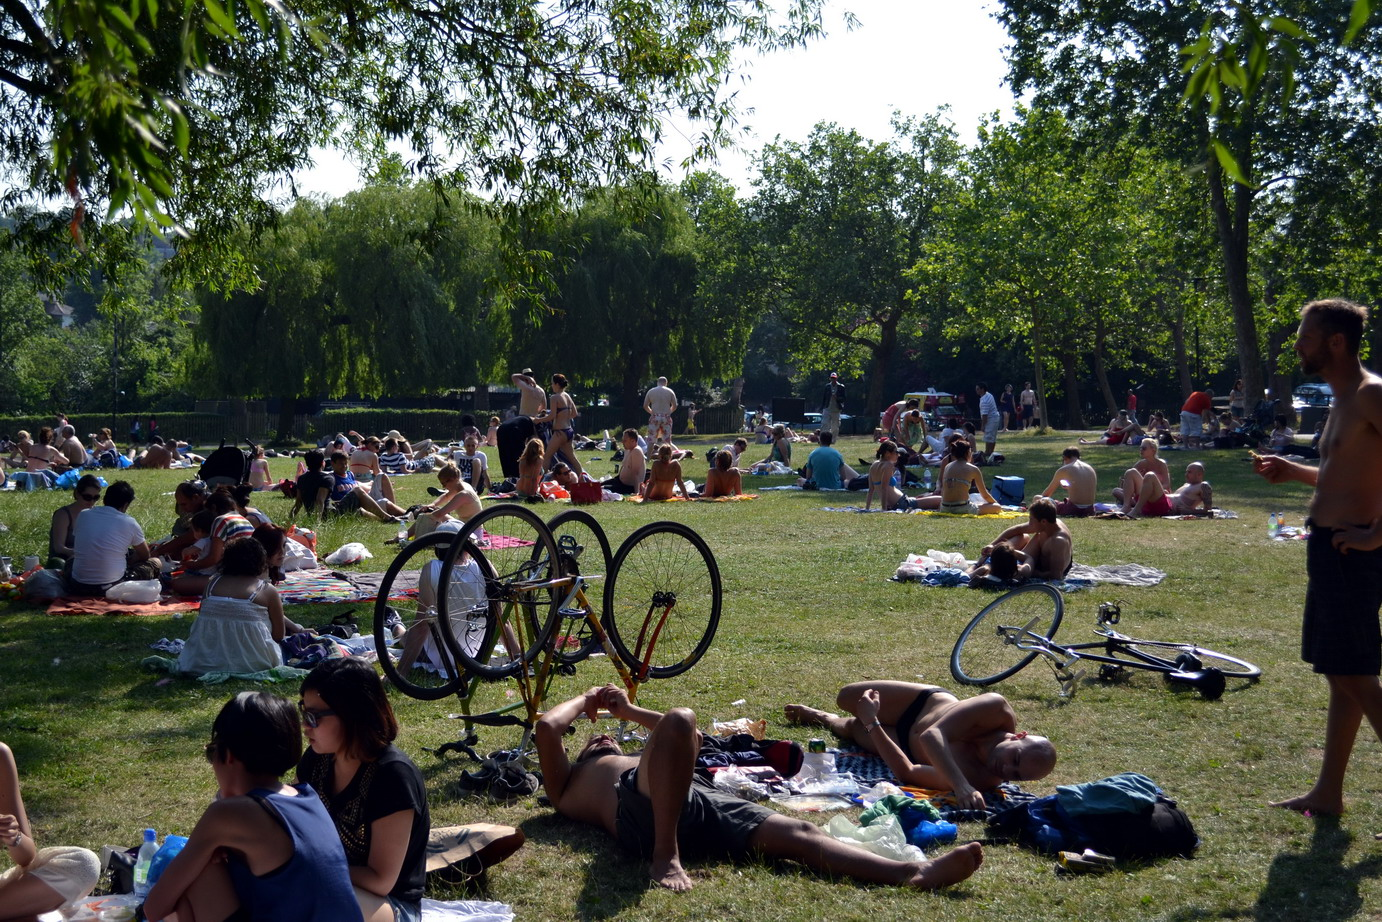 Londoner's sizzling in the sun after a catastrophic spring and early summer